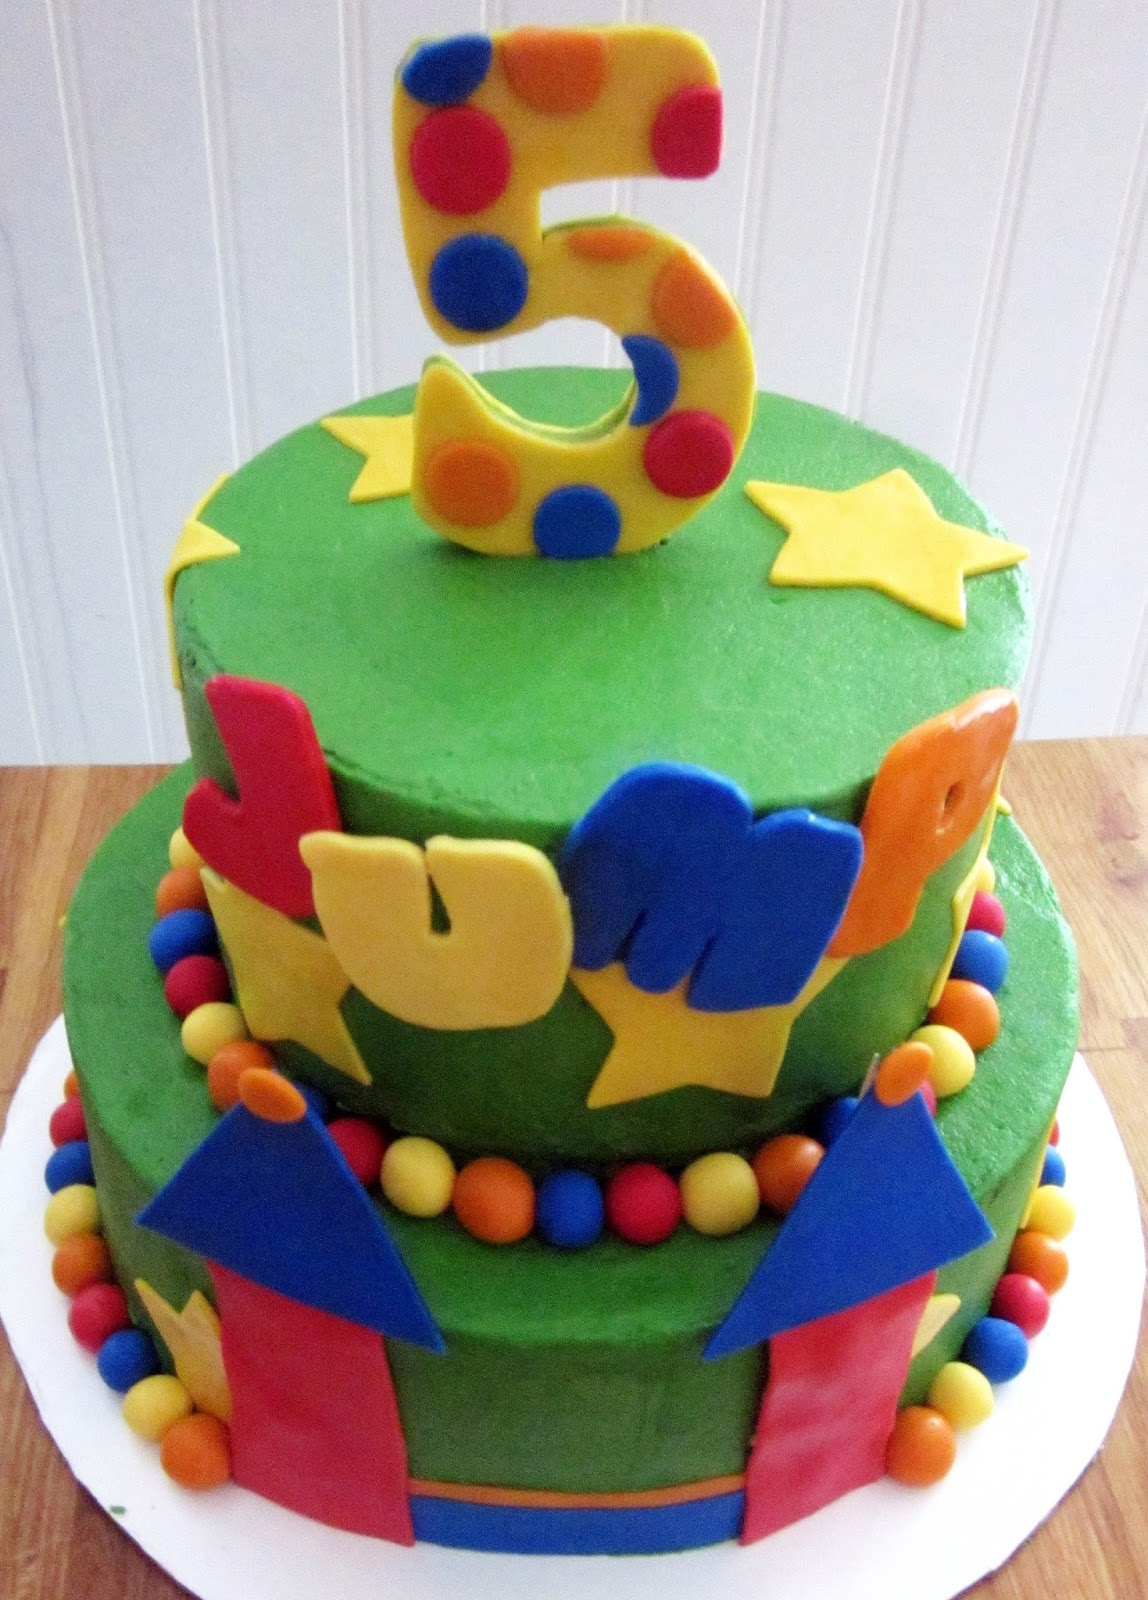 Darlin' Designs Bounce House Birthday Cake